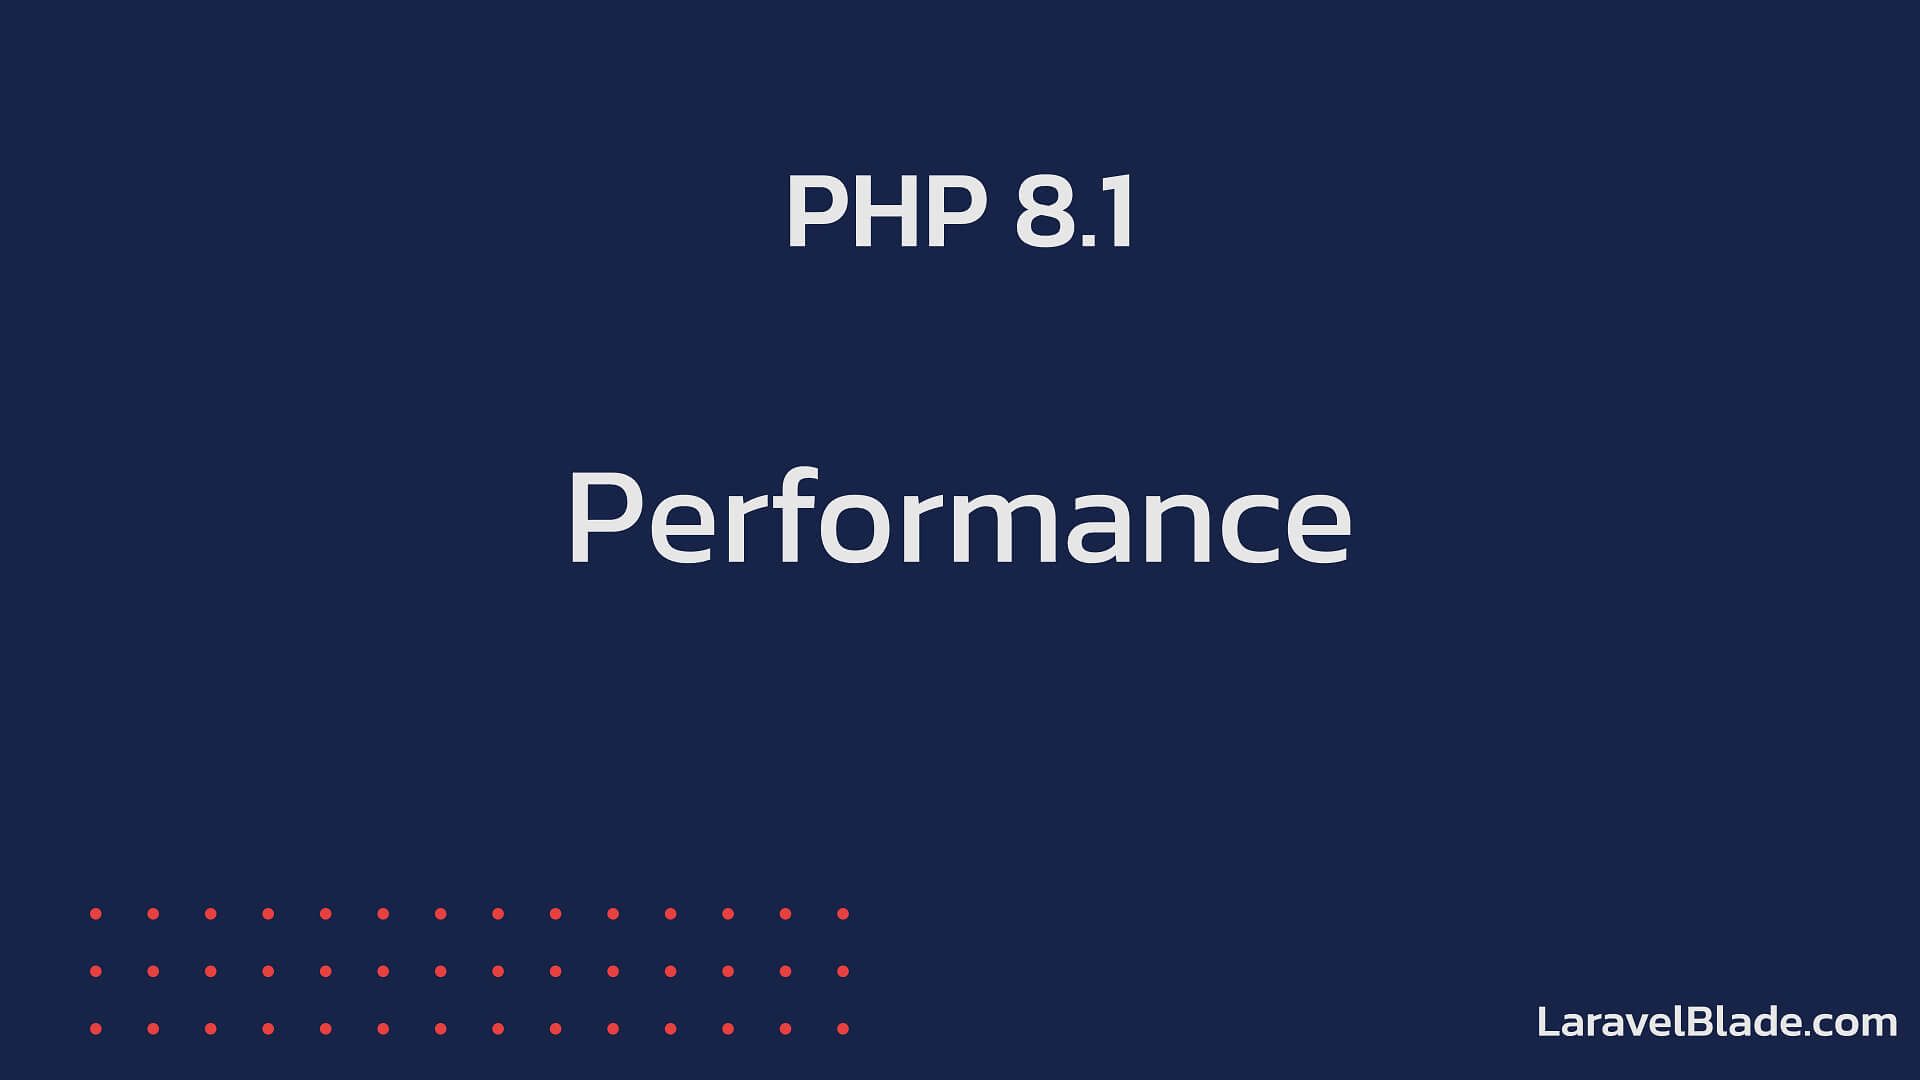 PHP 8.1 - Performance